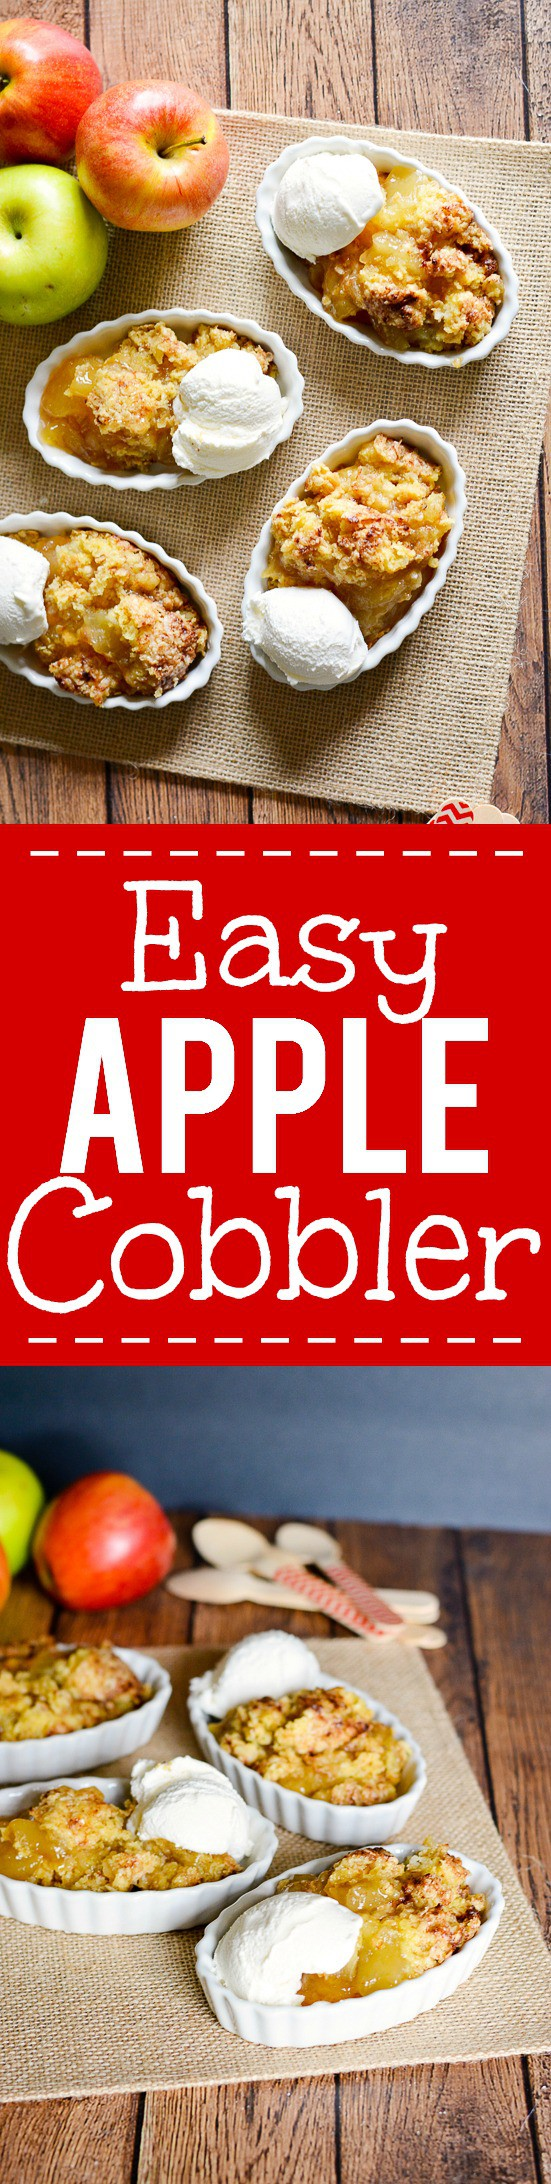 Easy Apple Cobbler Recipe - Make this 5 ingredient quick and easy apple cobbler recipe in just 30 minutes for a delightful, sweet Fall apple treat that will quickly become a family favorite. 5 ingredient, 30 minute, quick and easy dessert recipe. Can't beat that!